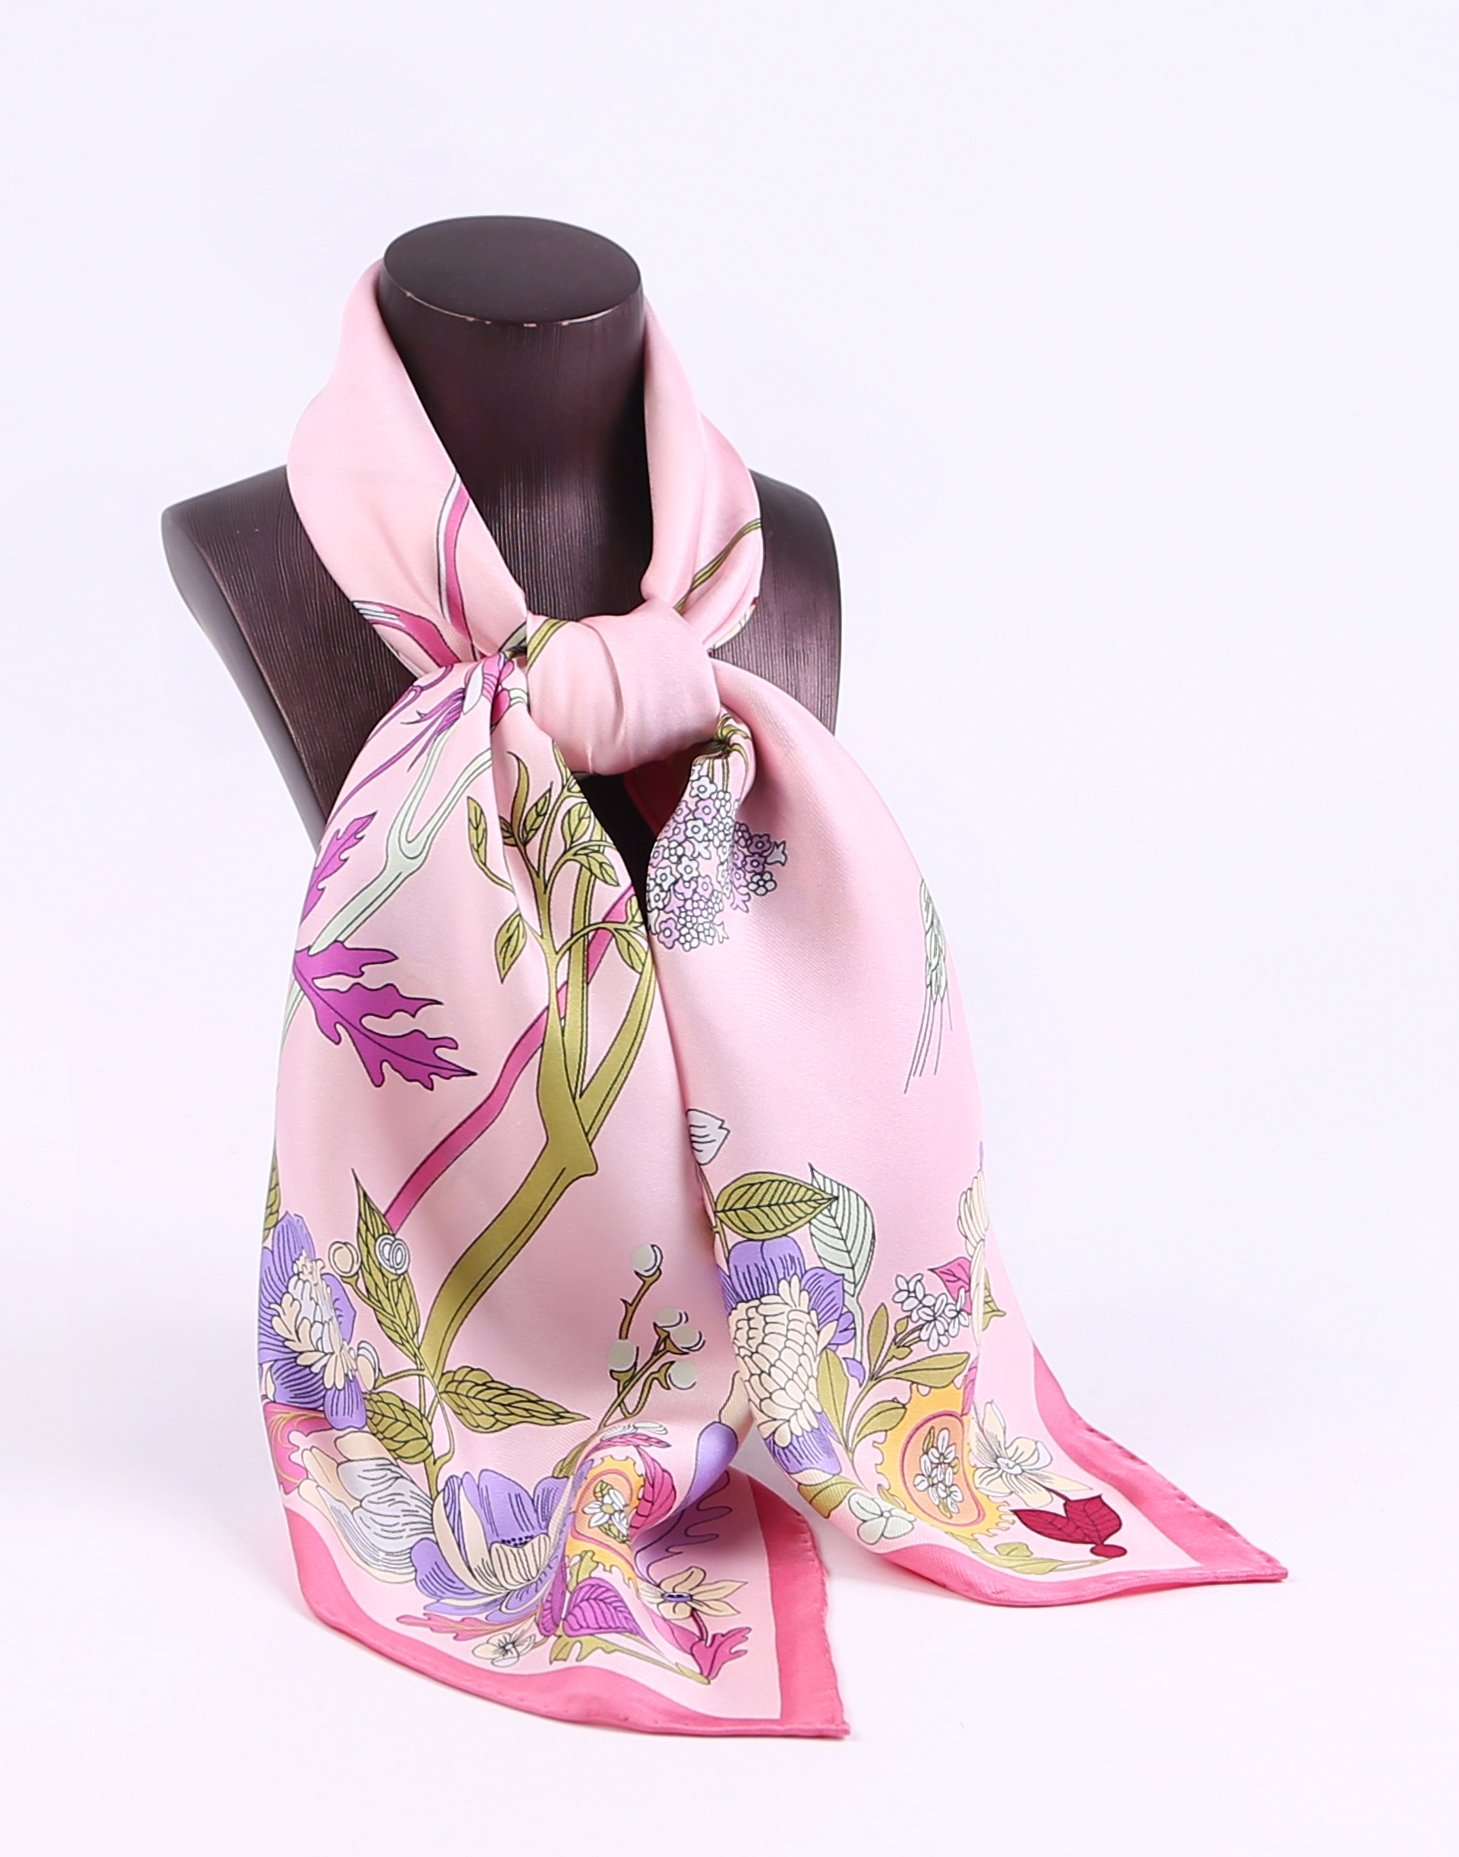 Jeelow 100% Pure Silk Scarf Scarves For Men & Women 36in Square Silk Twill Scarfs For Hair Gift Packaging by Jeelow (Image #7)